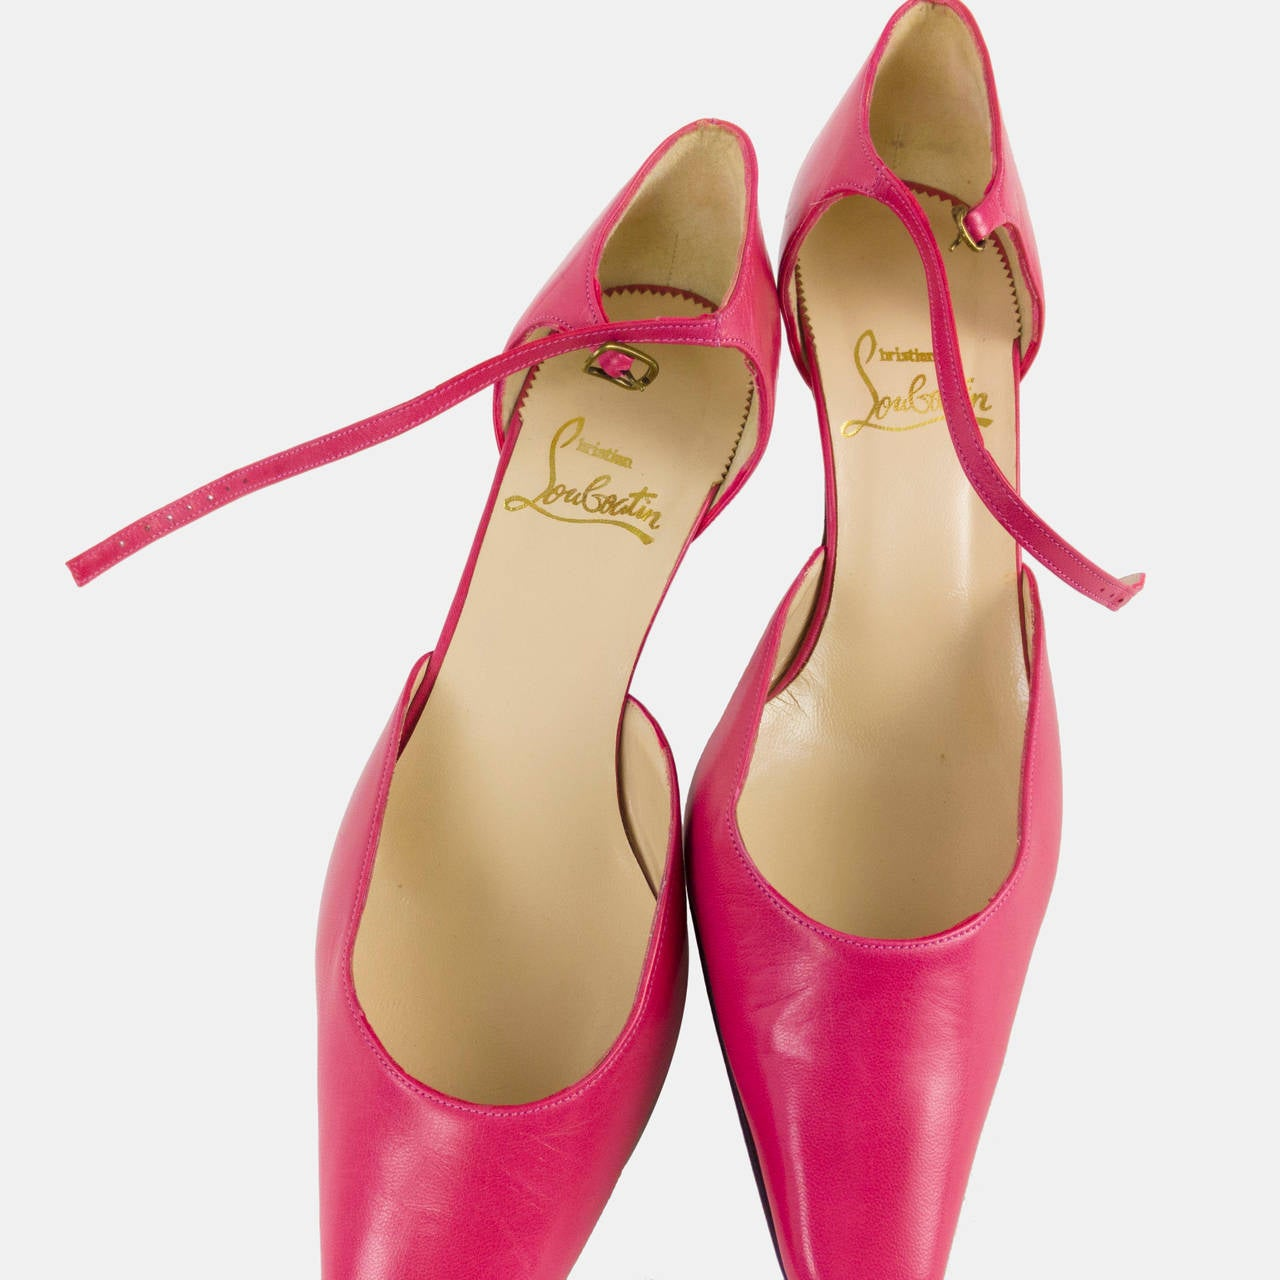 Christian Louboutin Pointy Toe Leather Hot Pink Fuscia Shoes Size 39.5 3